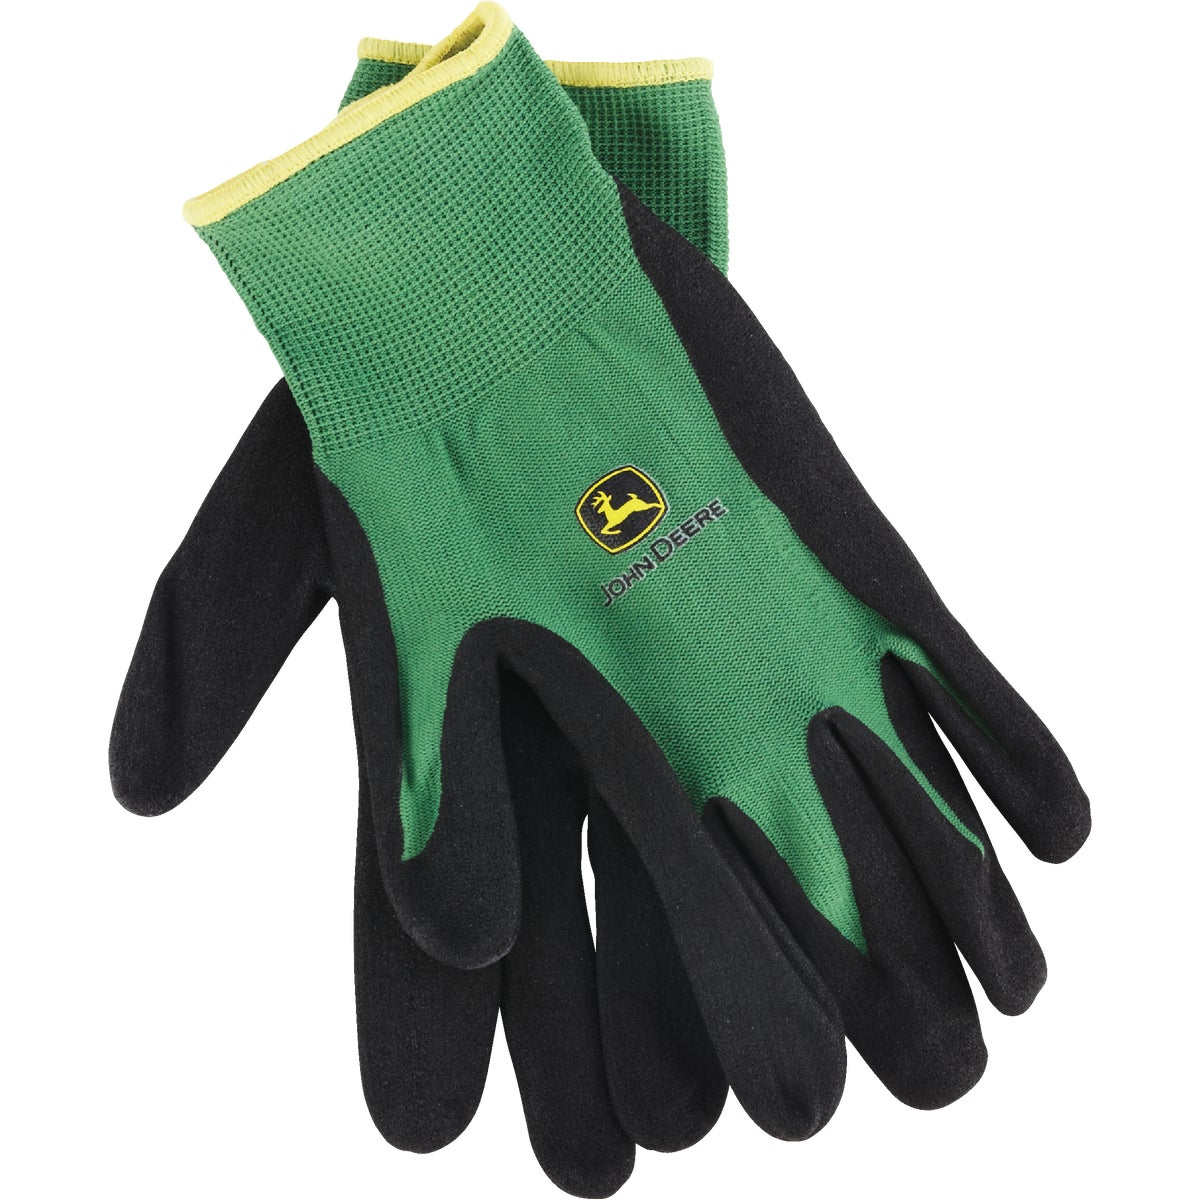 LRG NITRILE PALM GLOVE